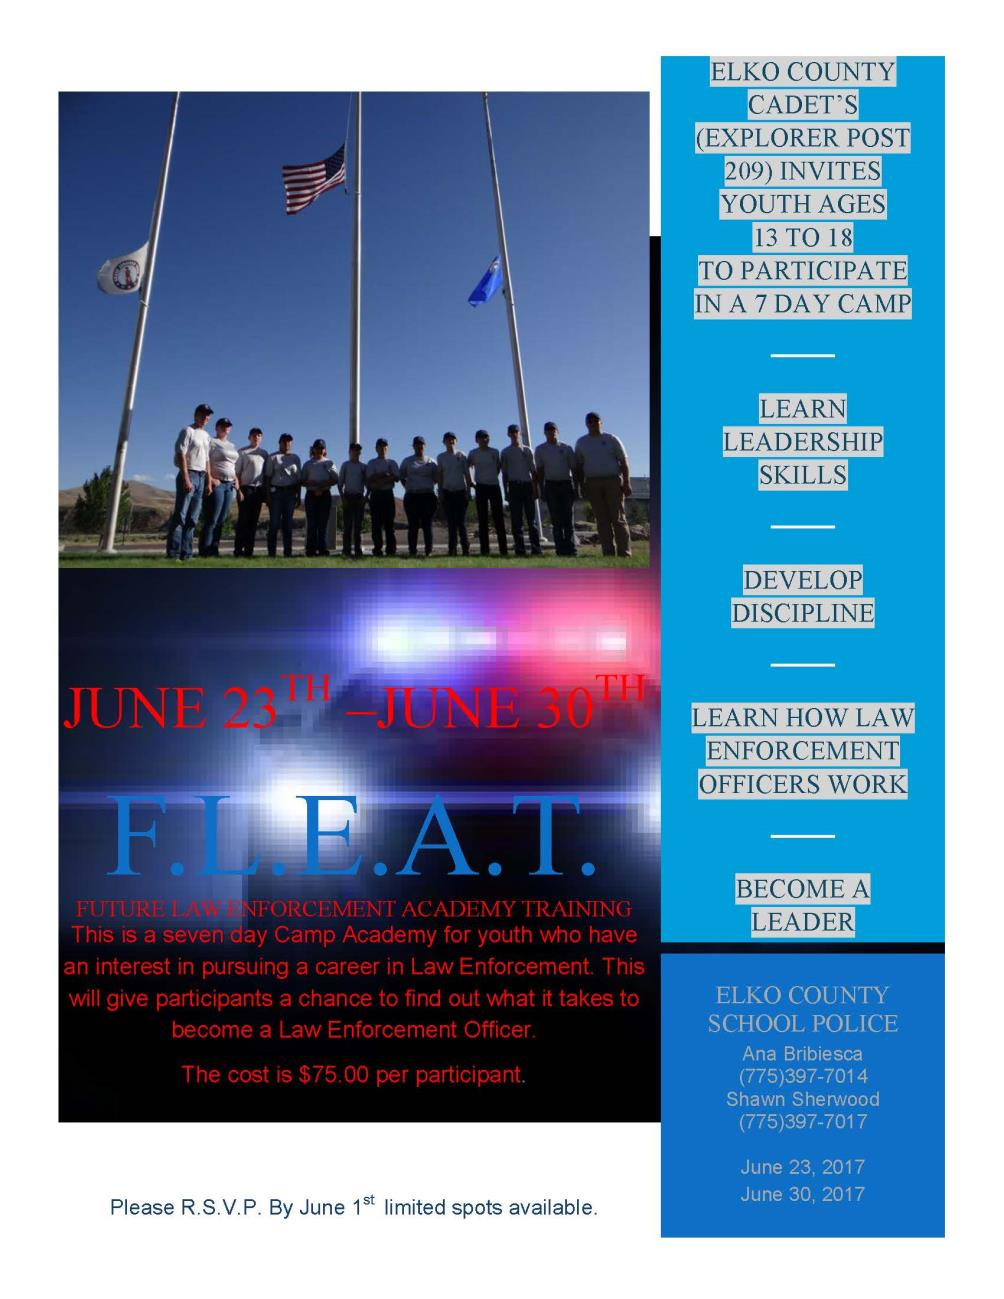 6-23-2017 Future Law Enforcement Academy Training Flyer Image